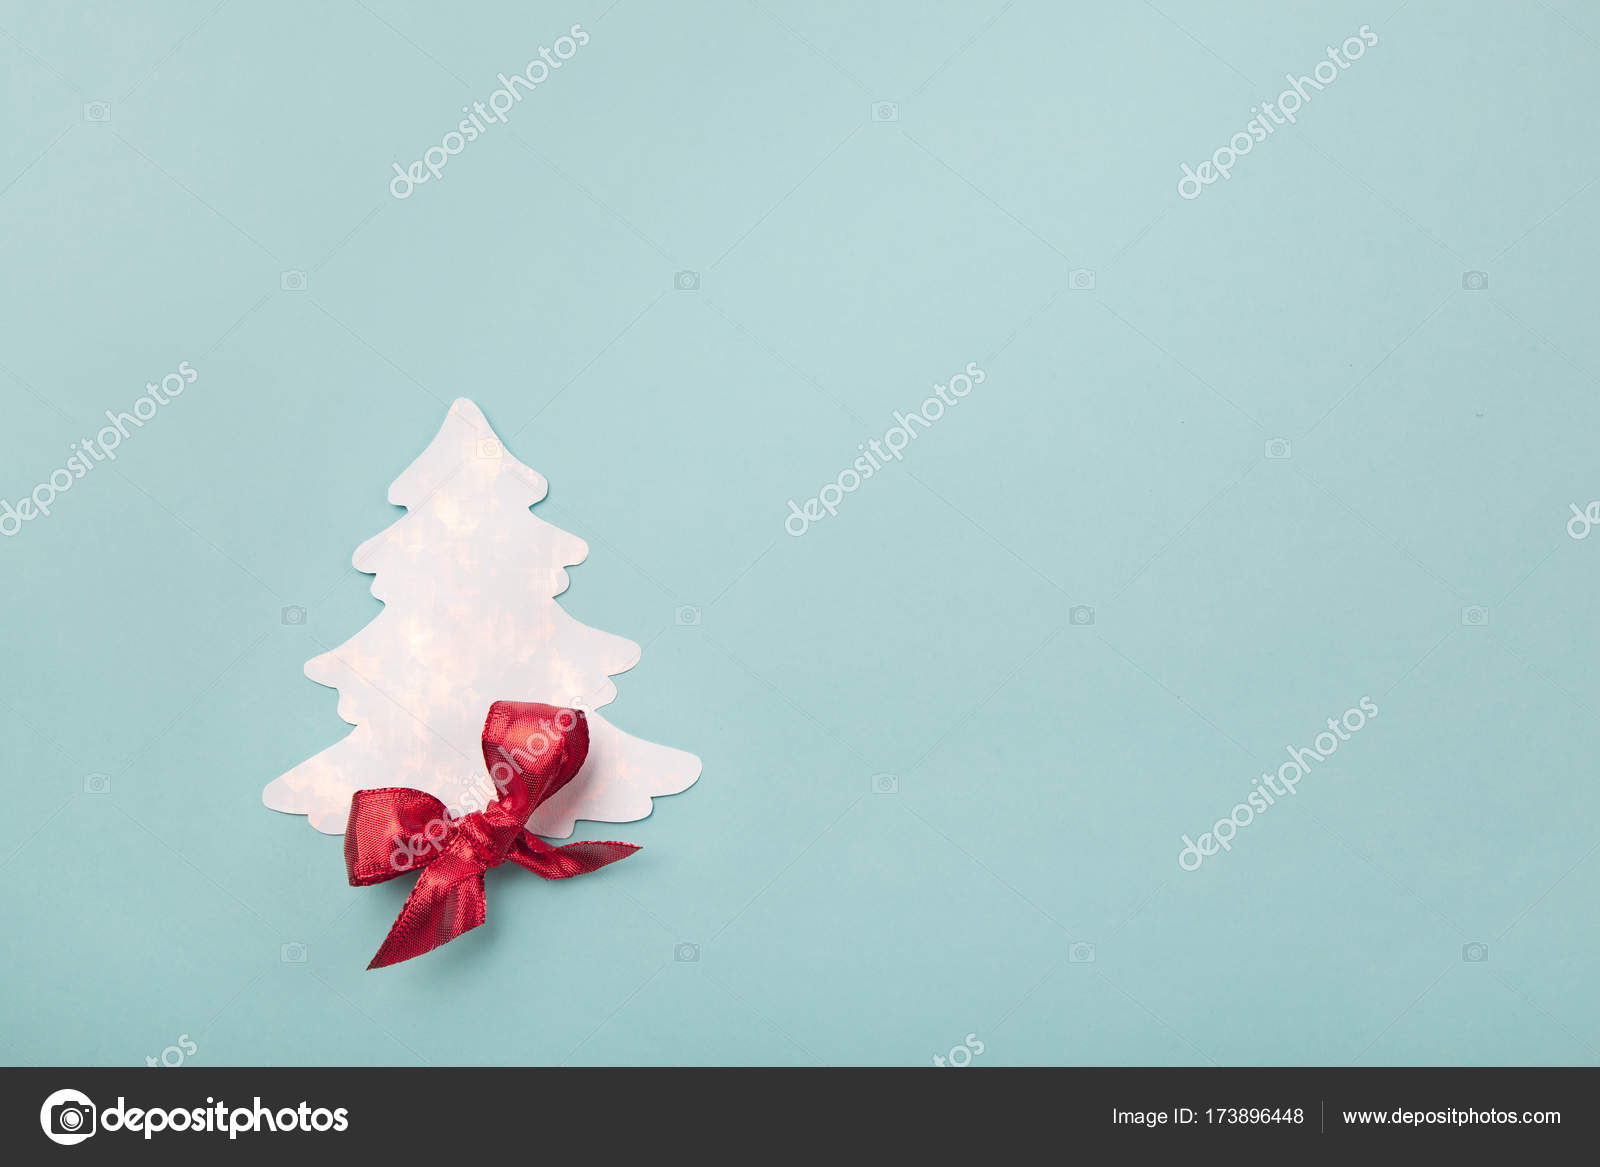 christmas greeting card with xmas tree paper cutout and red ribbon bow with digital effects added plenty of space for text